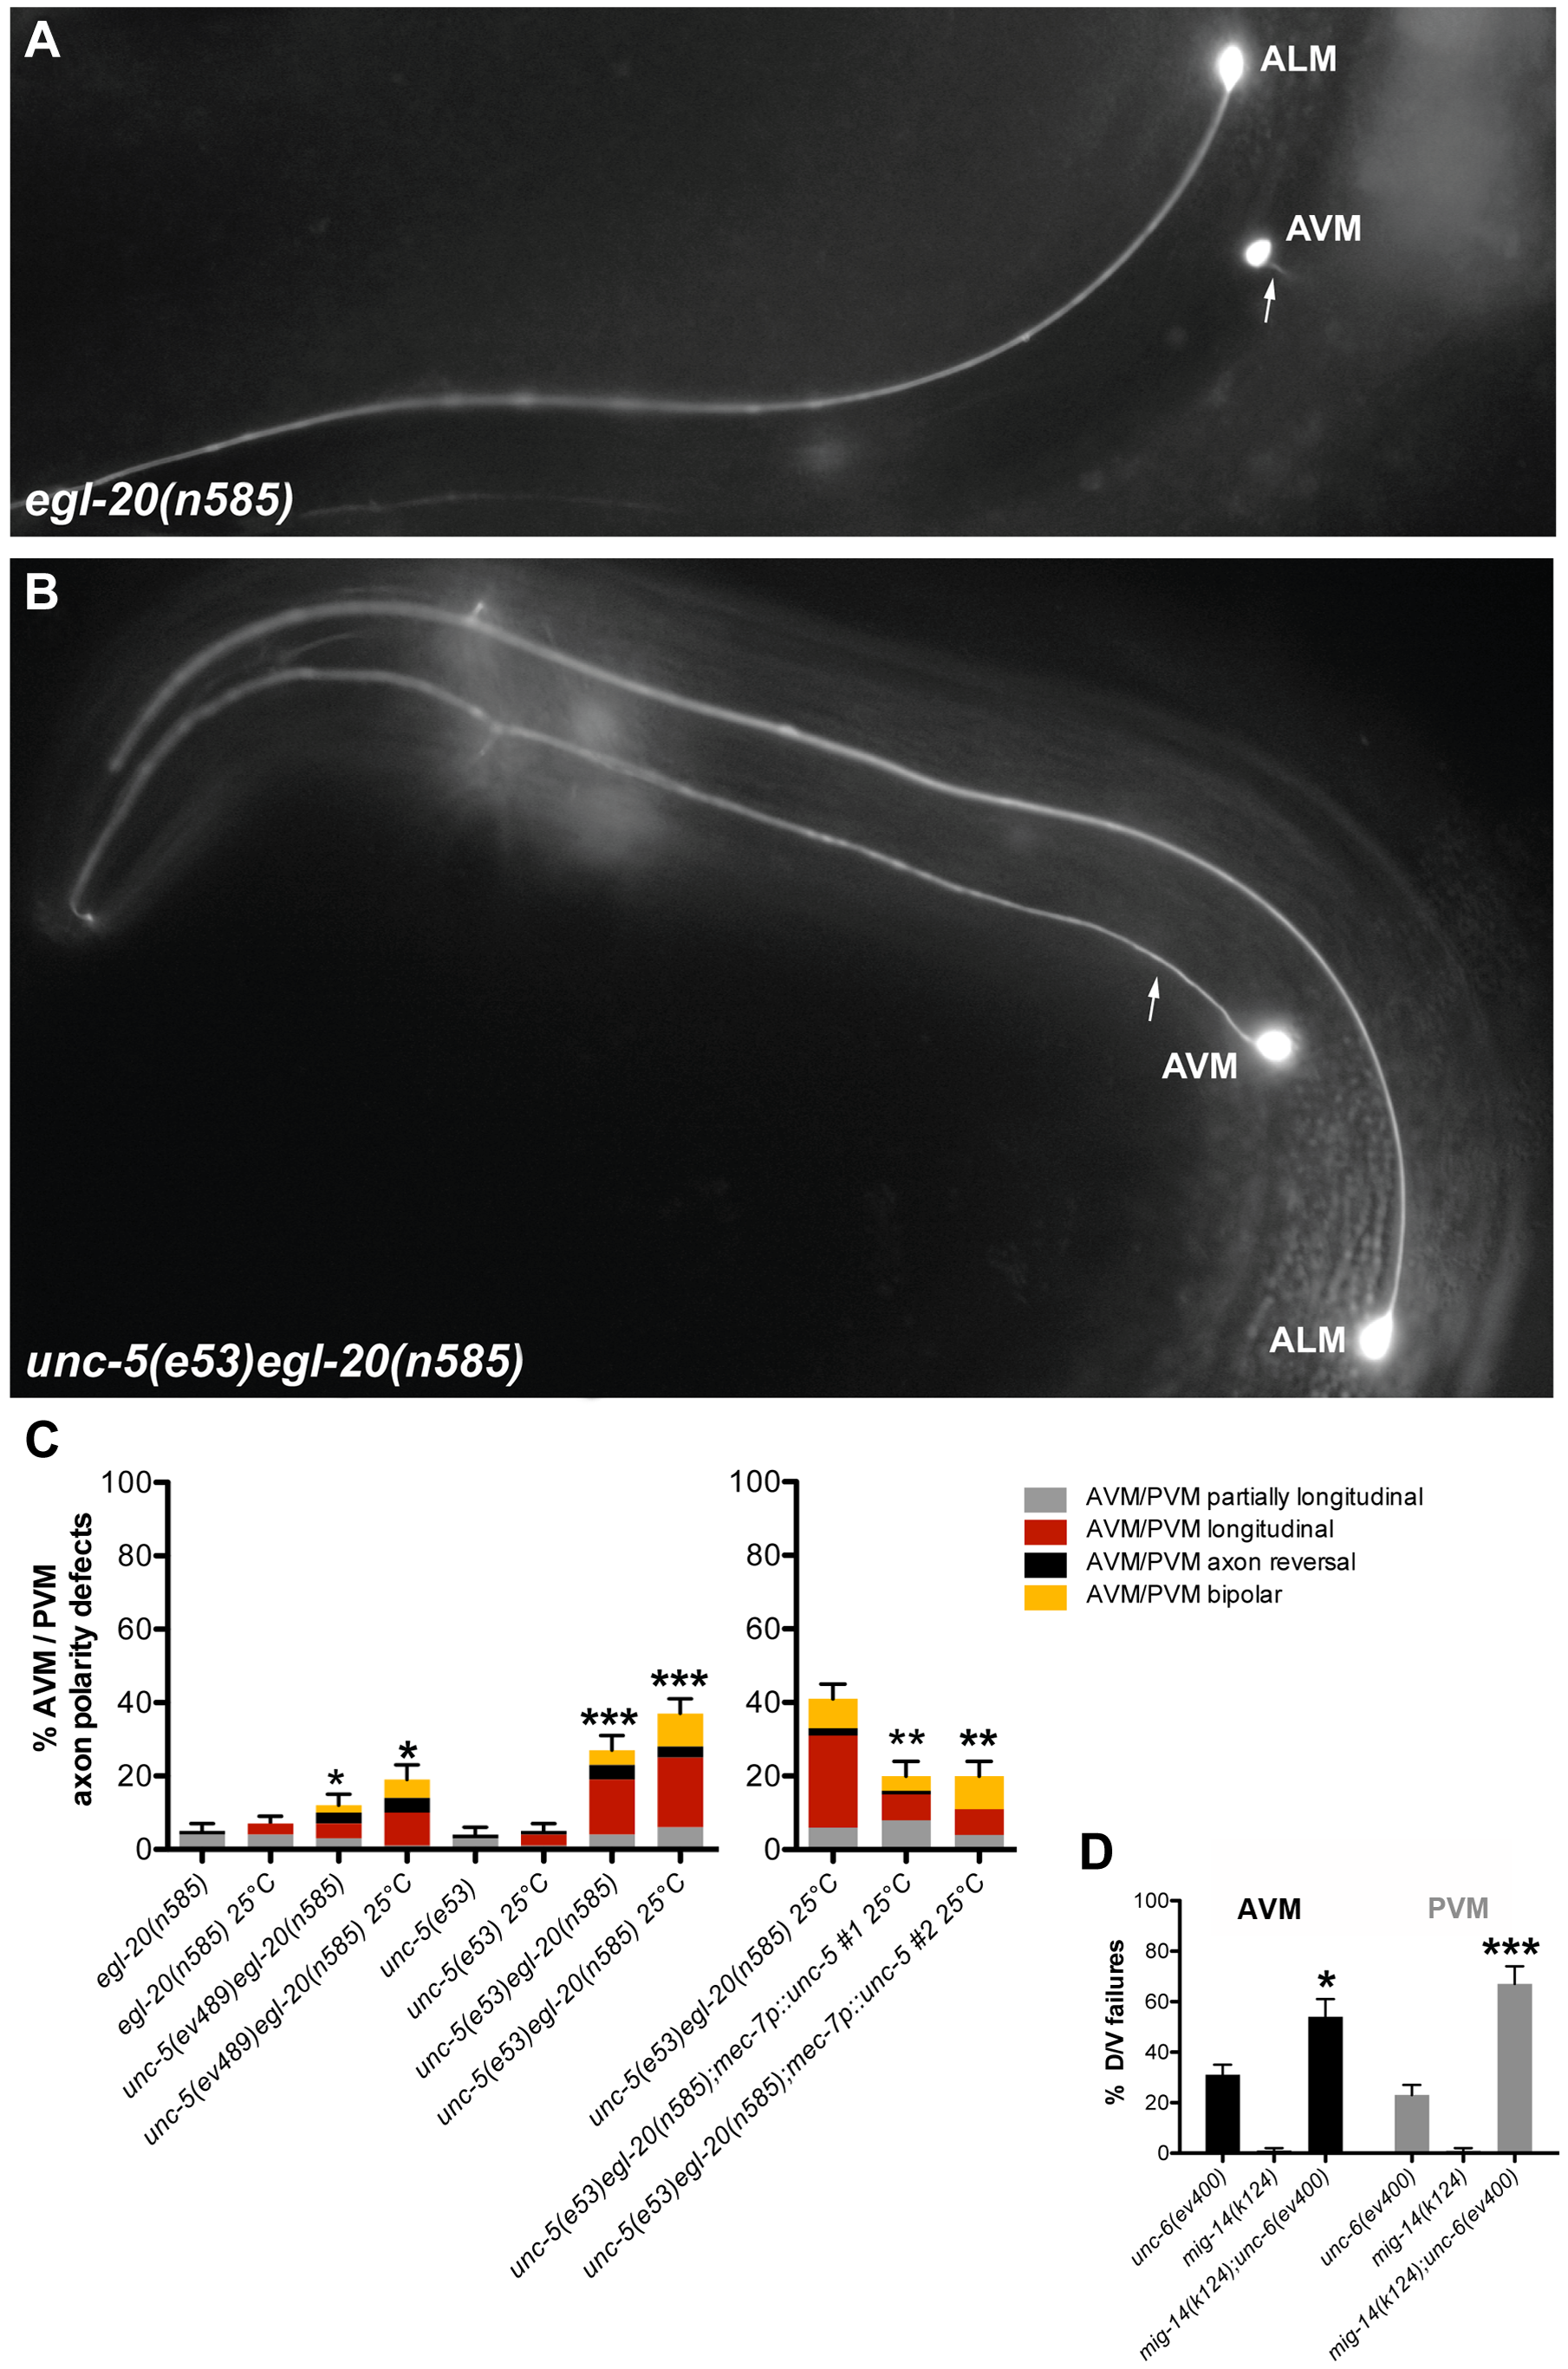 Wnt and Netrin signaling components function redundantly to regulate D/V axon guidance of AVM and PVM neurons.